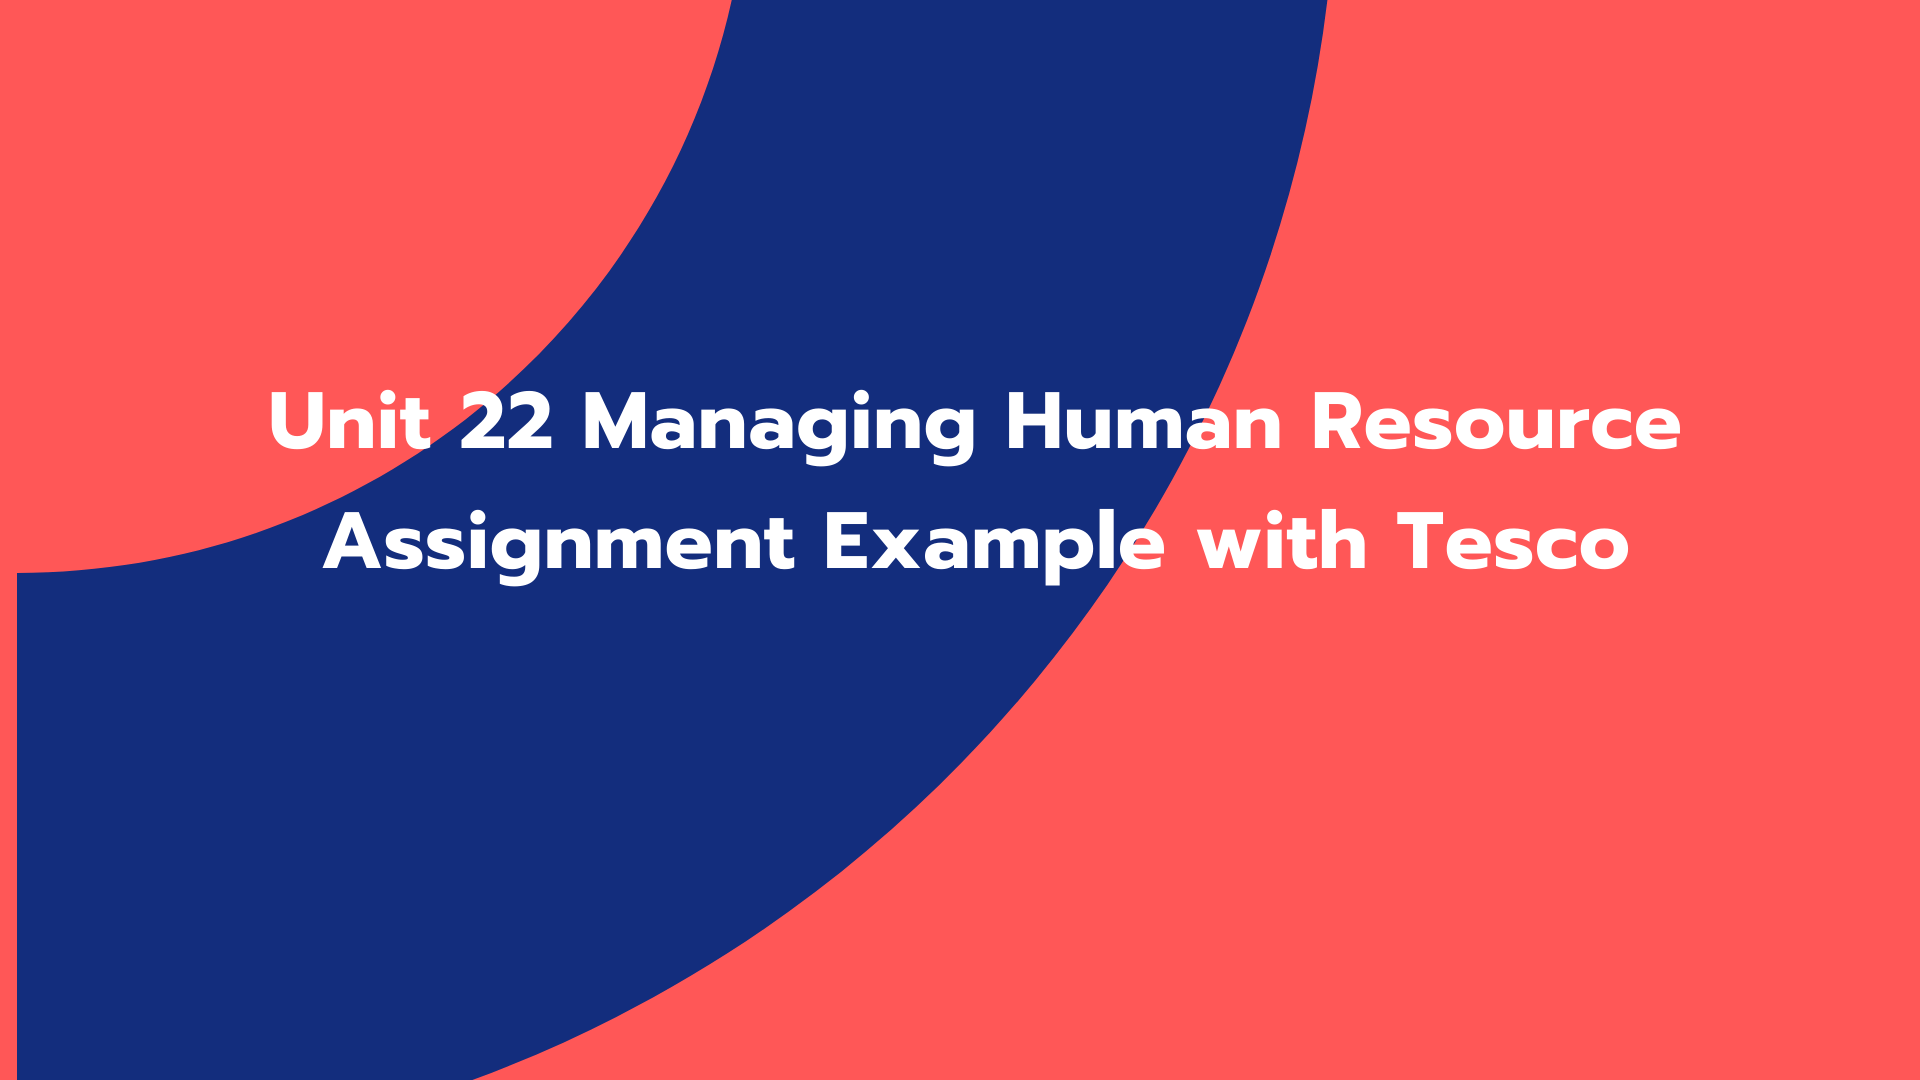 Unit 22 Managing Human Resource Assignment Example with Tesco